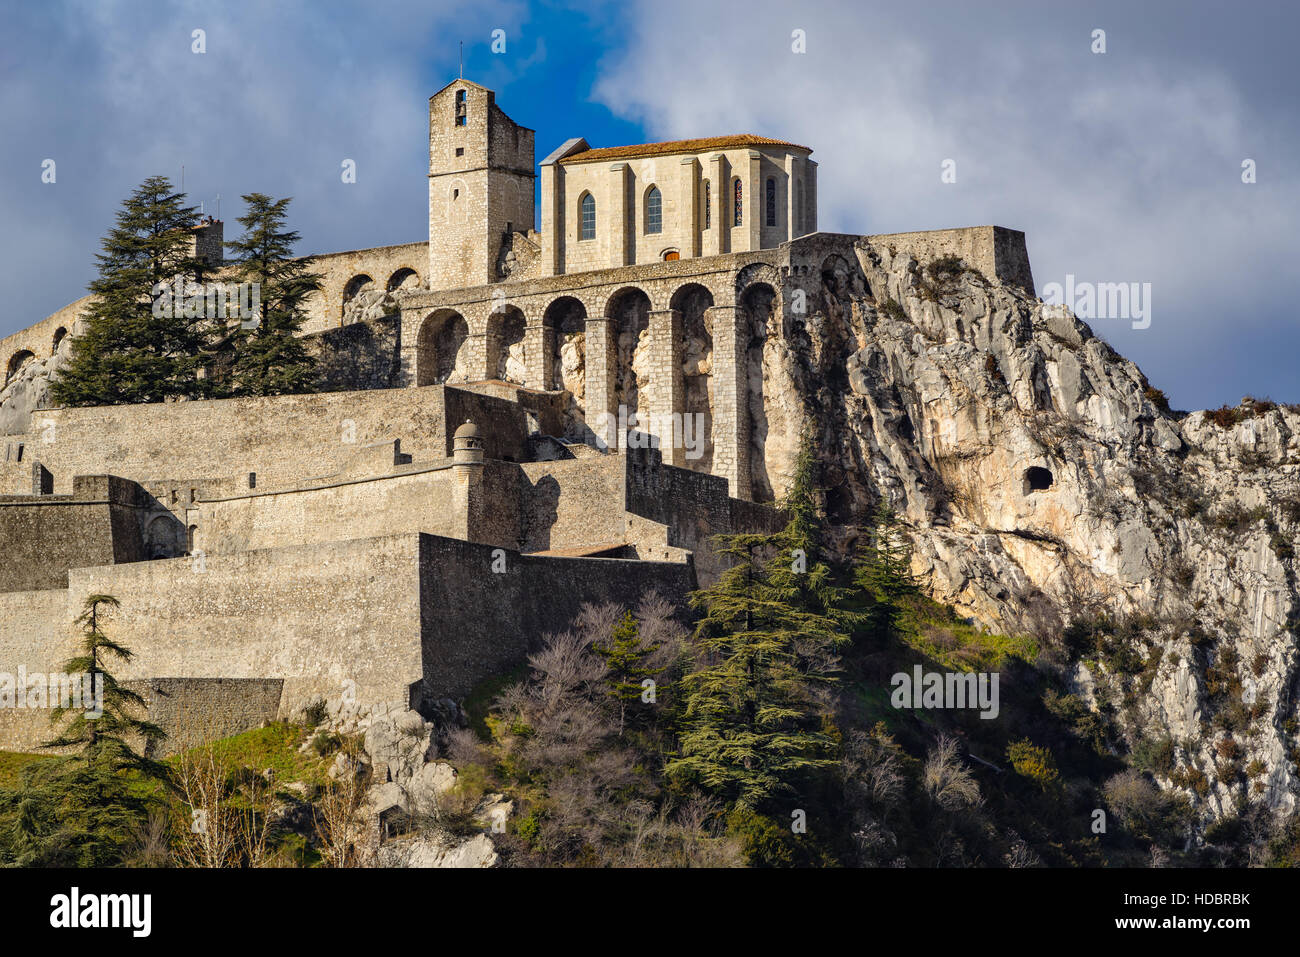 Citadel of Sisteron and its fortifications. Alpes de Haute Provence, Southern Alps, France - Stock Image